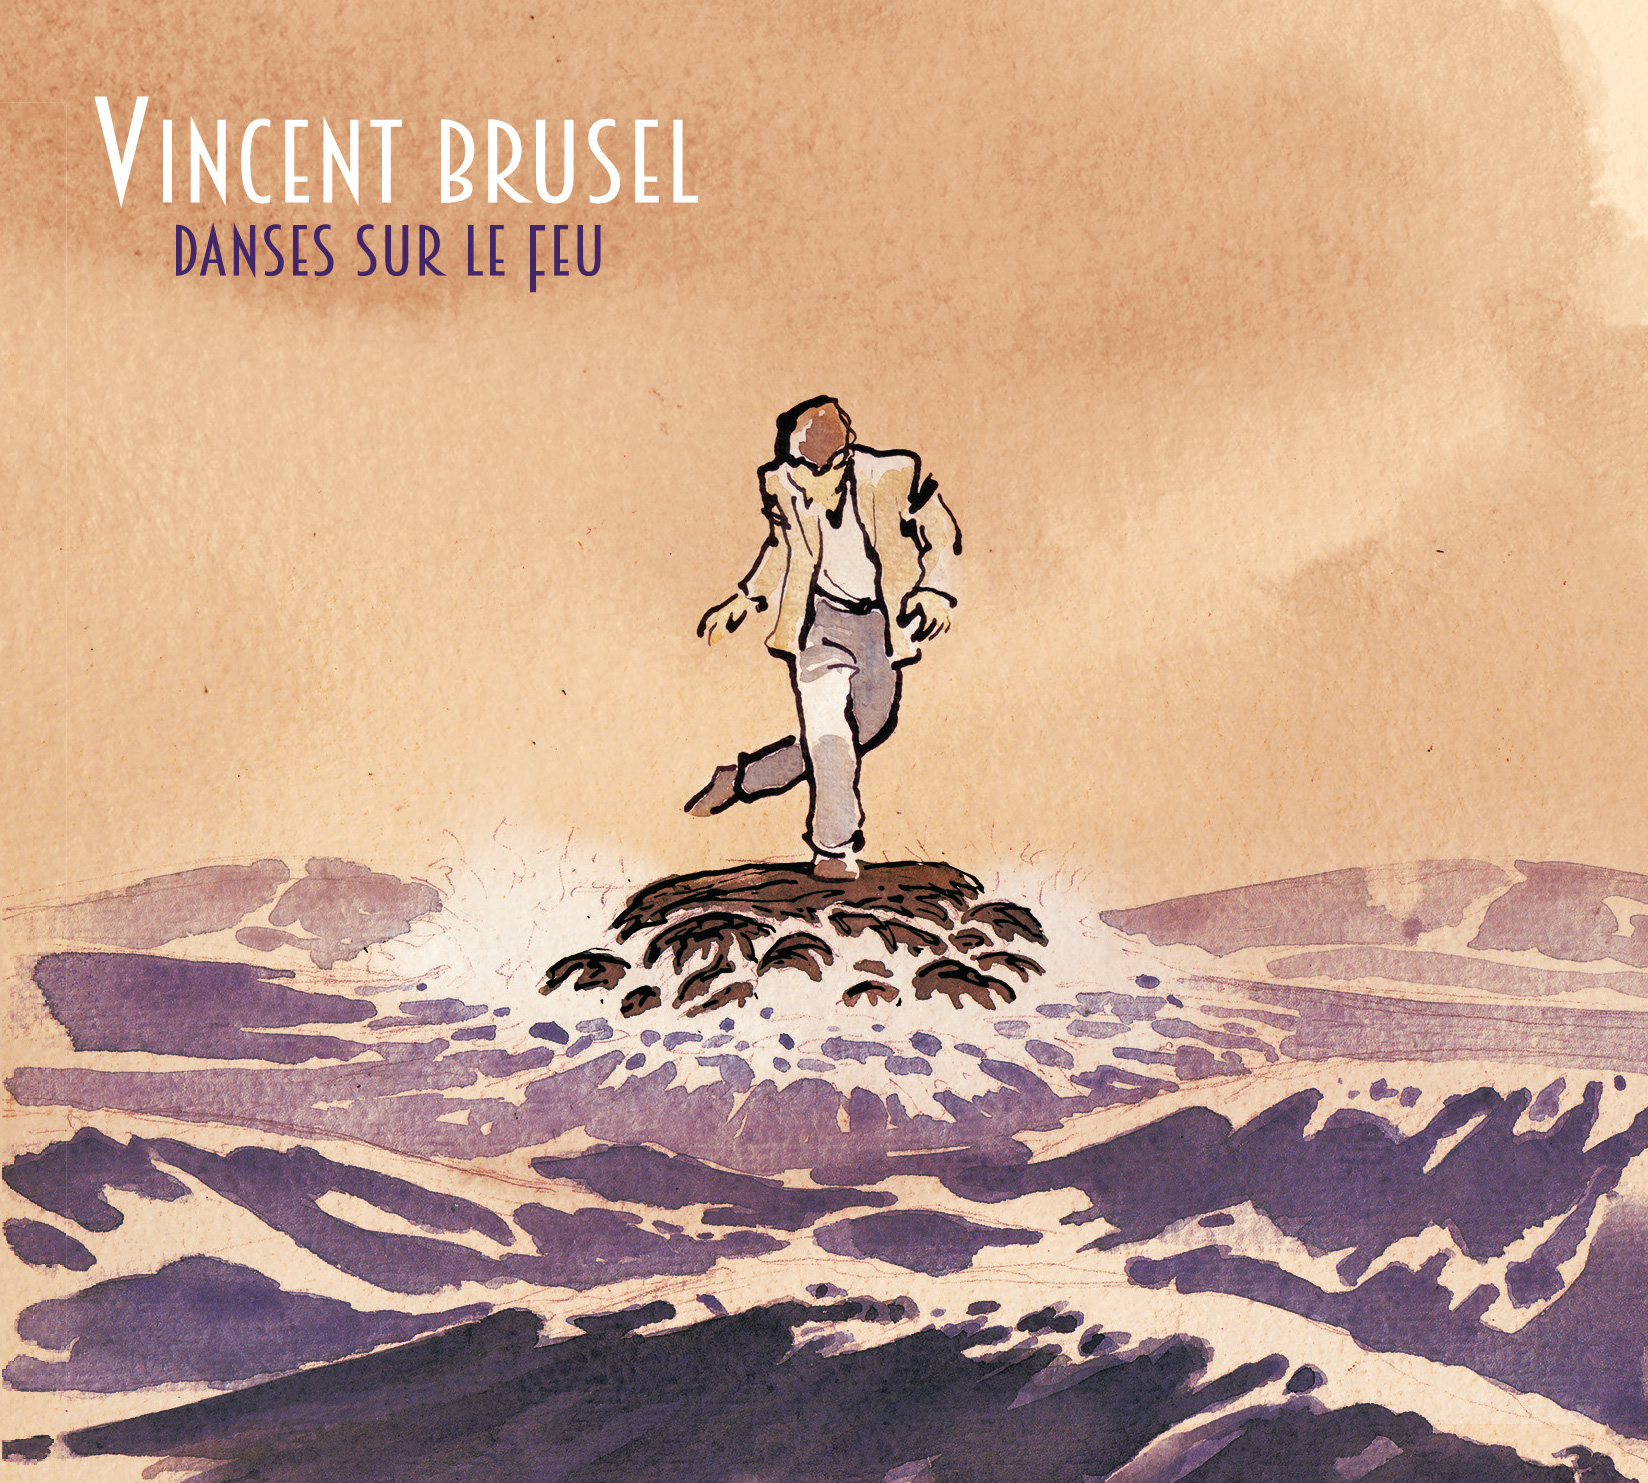 Vincent Brusel